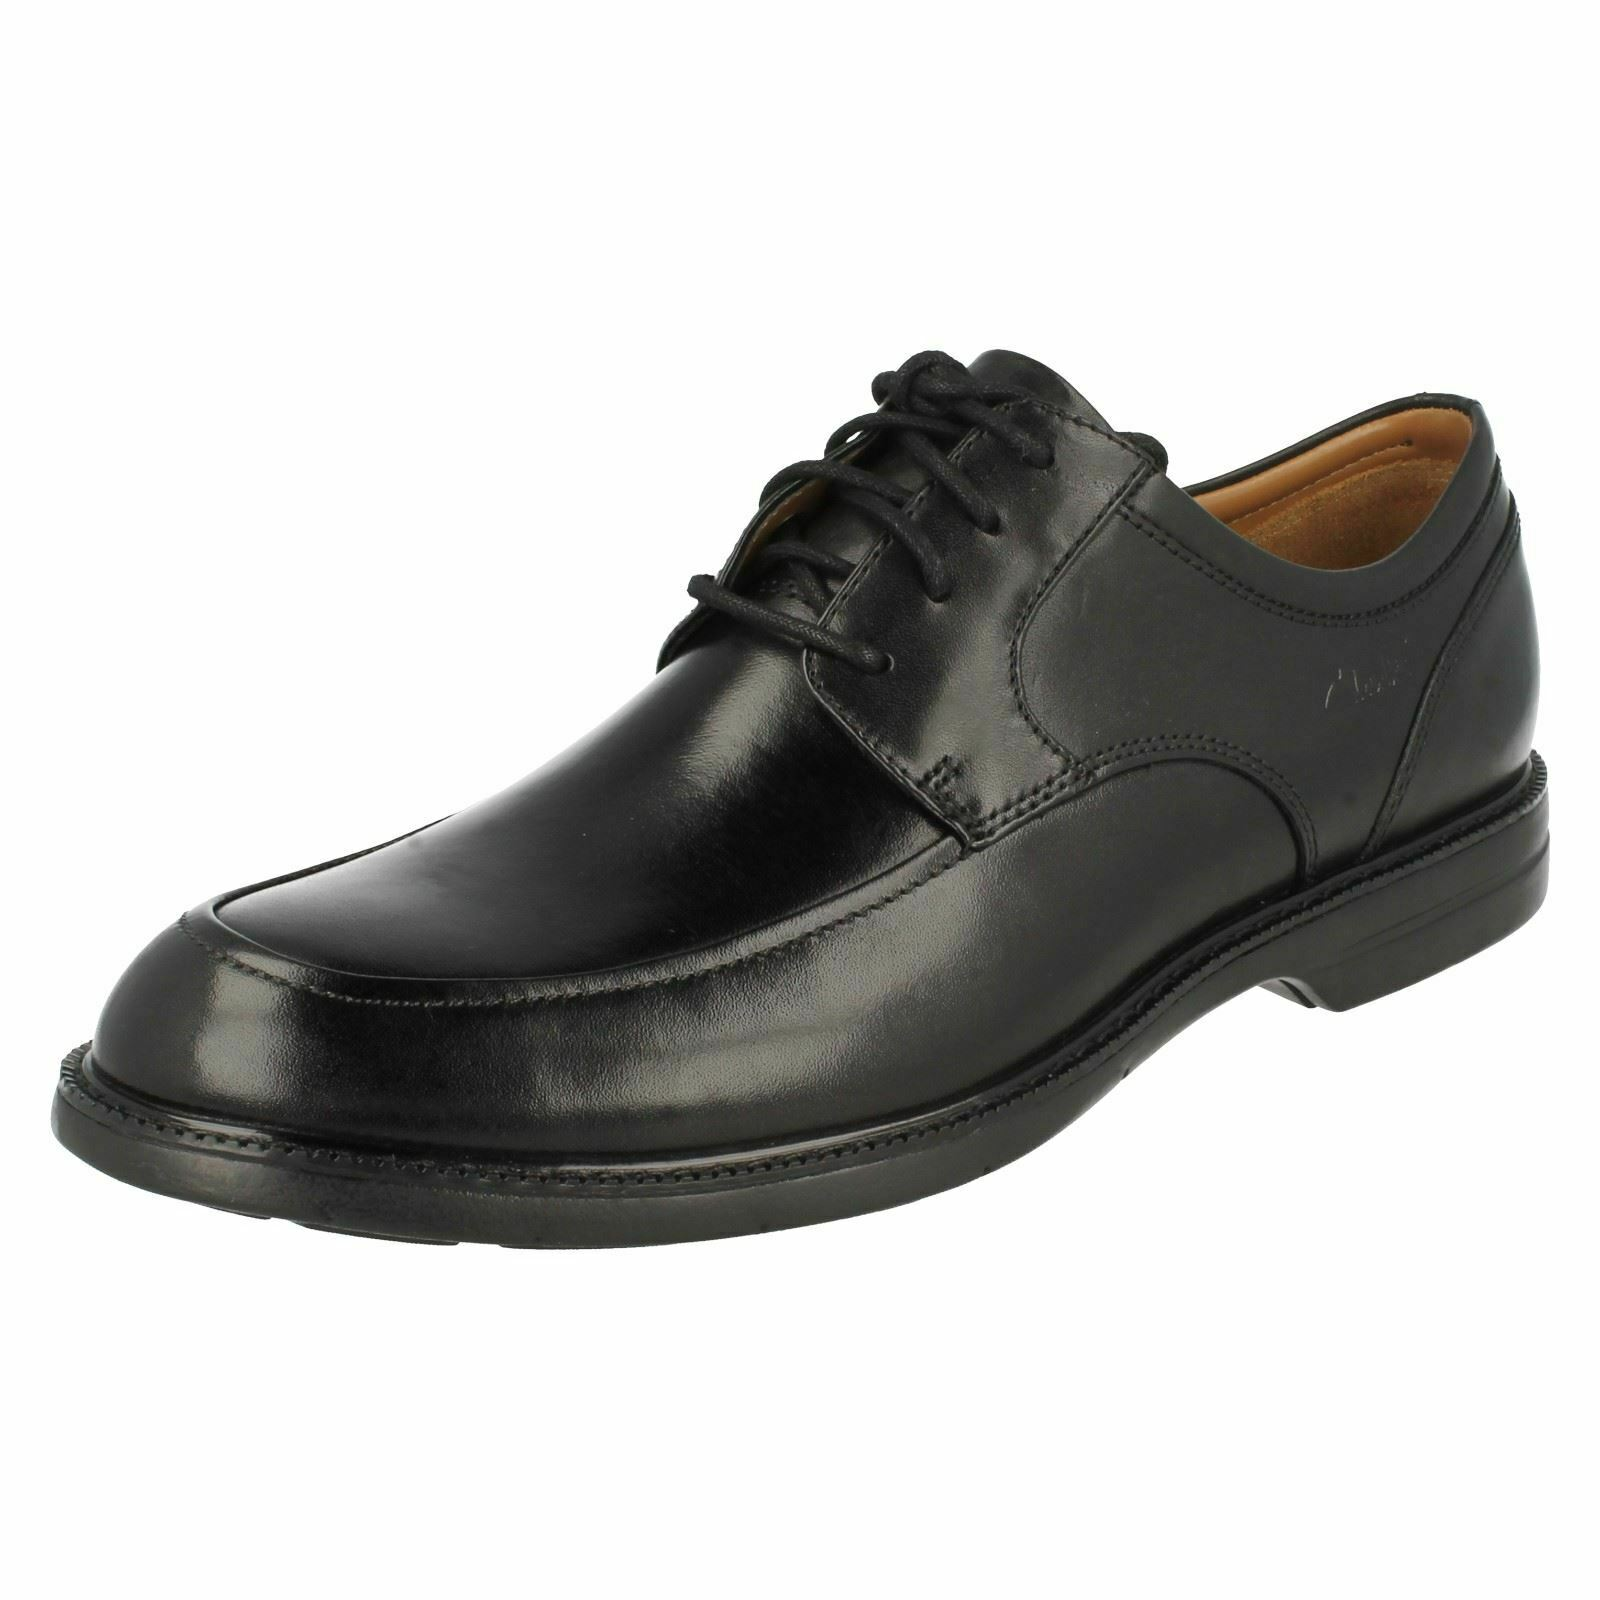 MENS CLARKS EXTRALIGHT LEATHER EVERYDAY FORMAL LACE UP SMART SHOES BILTON WALK